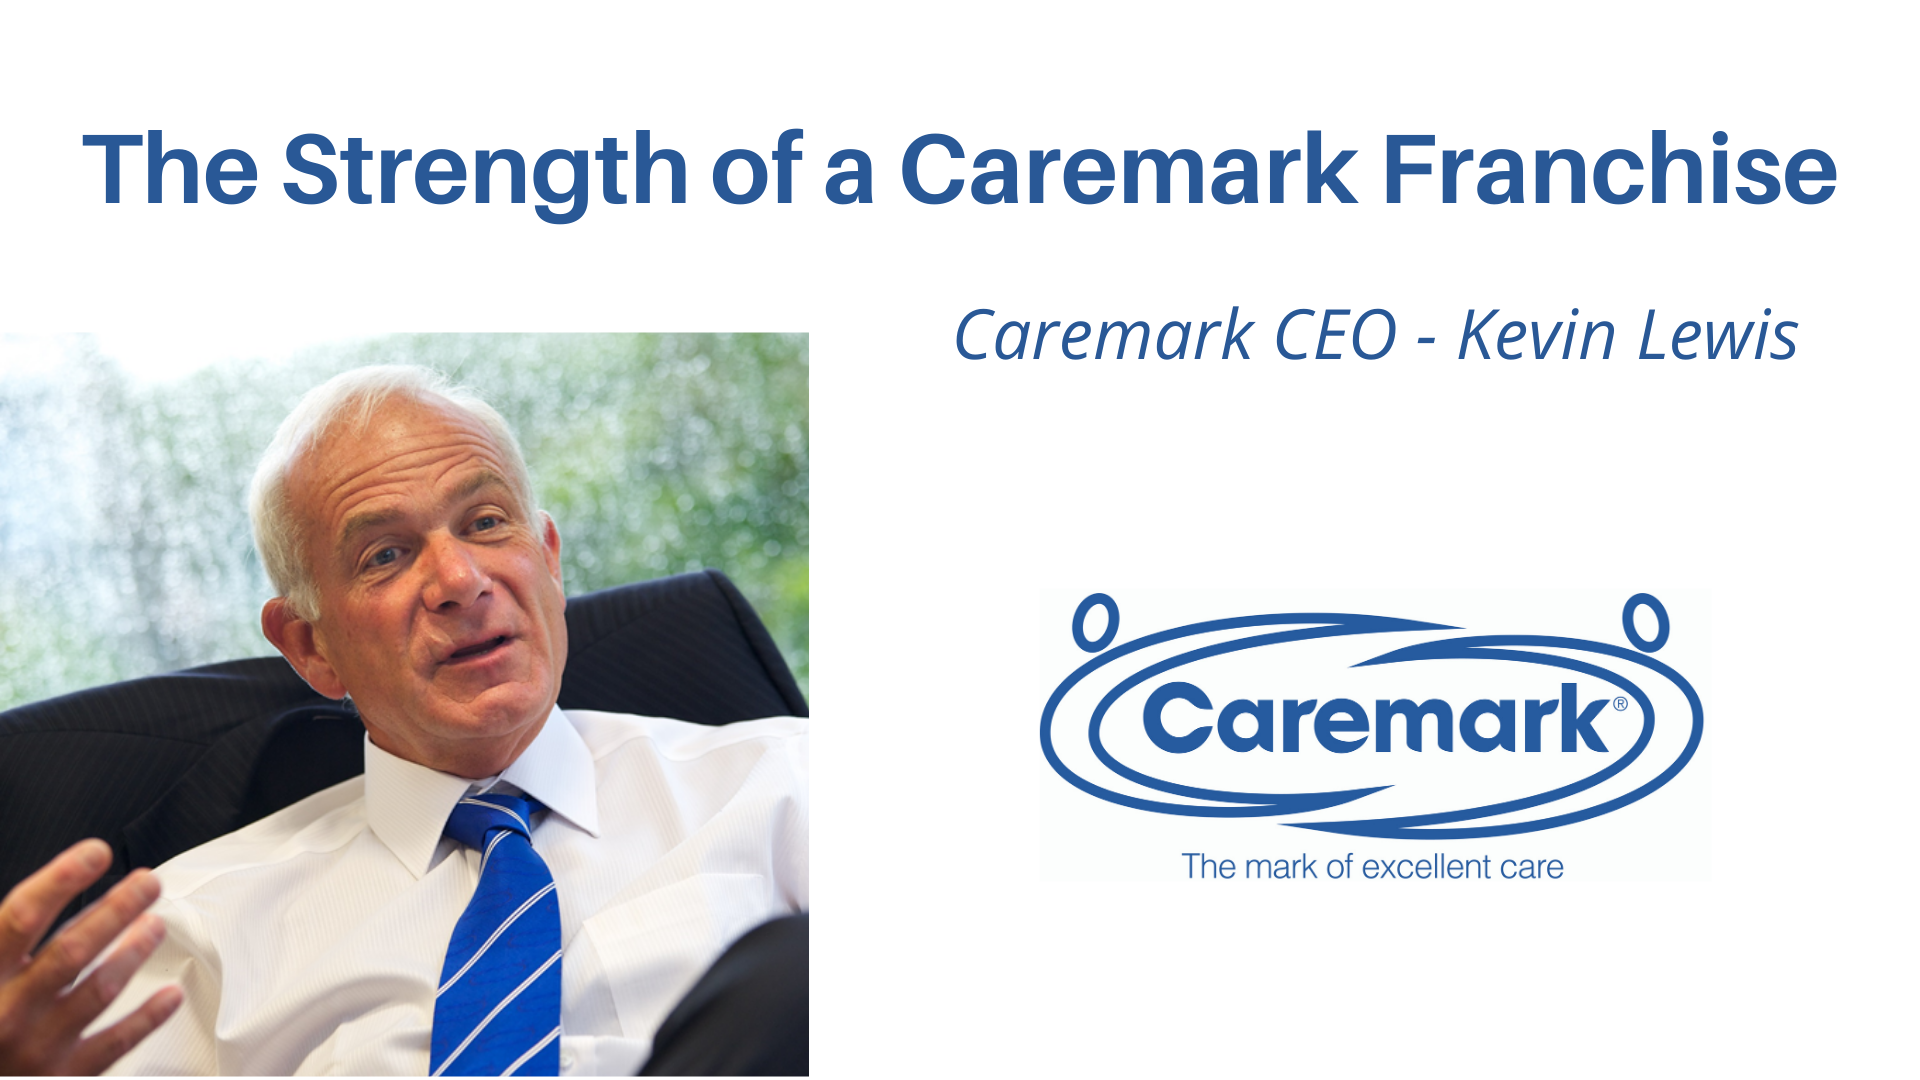 The strength of a Caremark Franchise